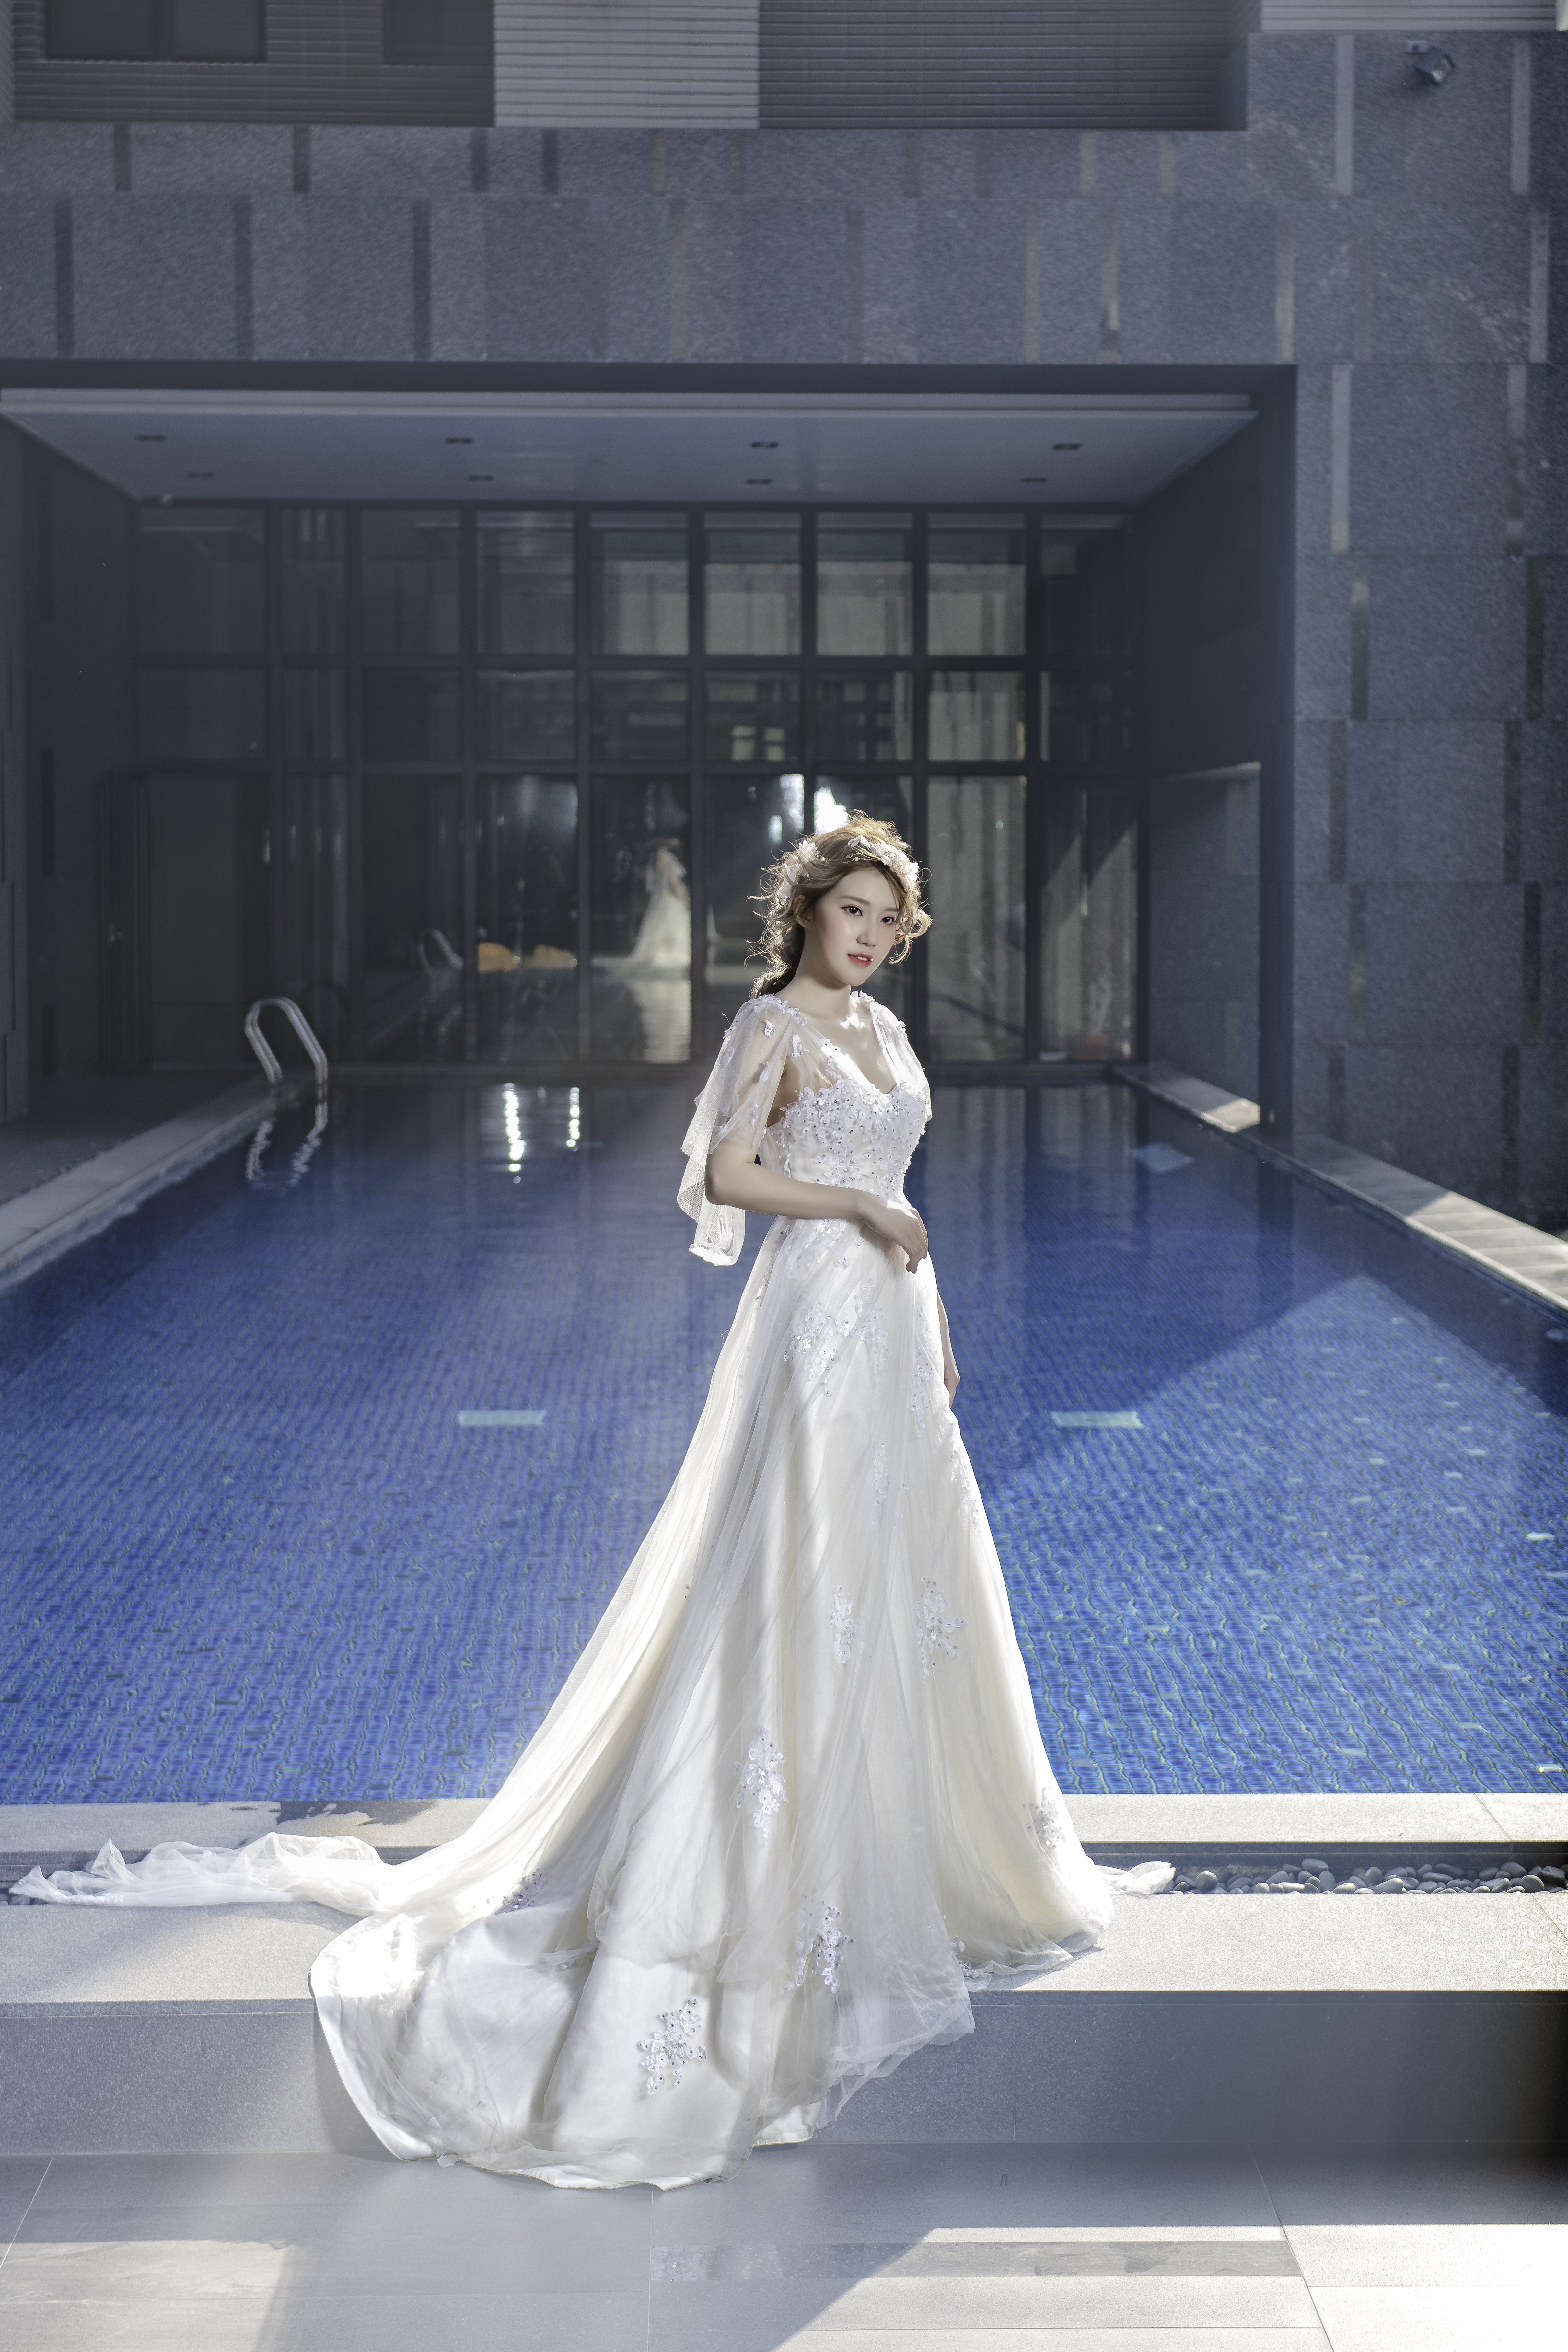 woman in white dress standing near swimming pool during daytime